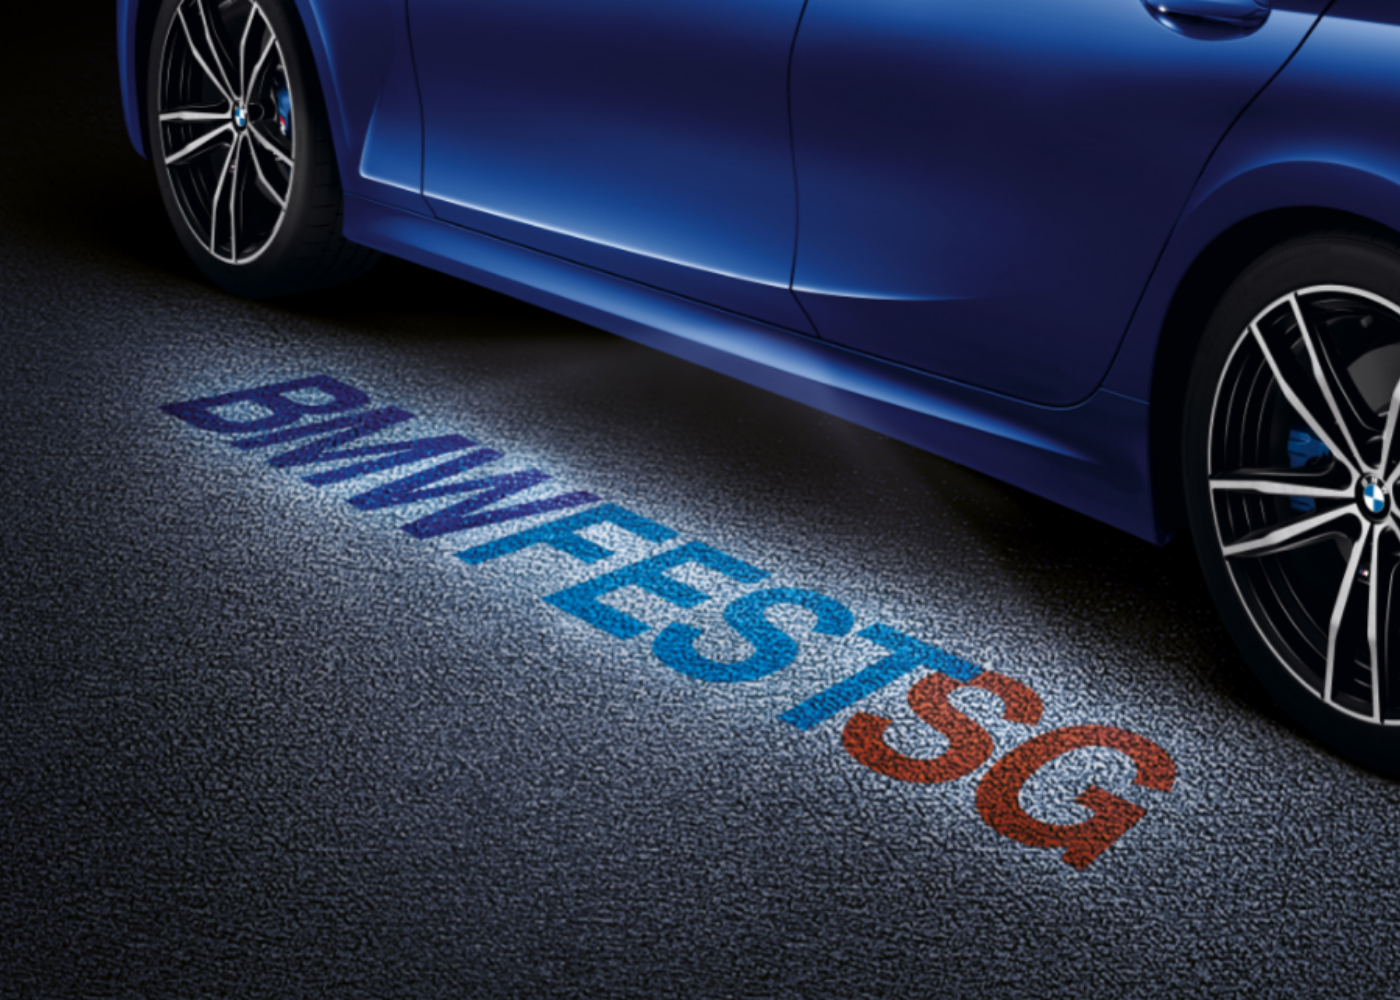 Drive home a BMW, enjoy an exclusive fashion show and more at BMWFestSG!